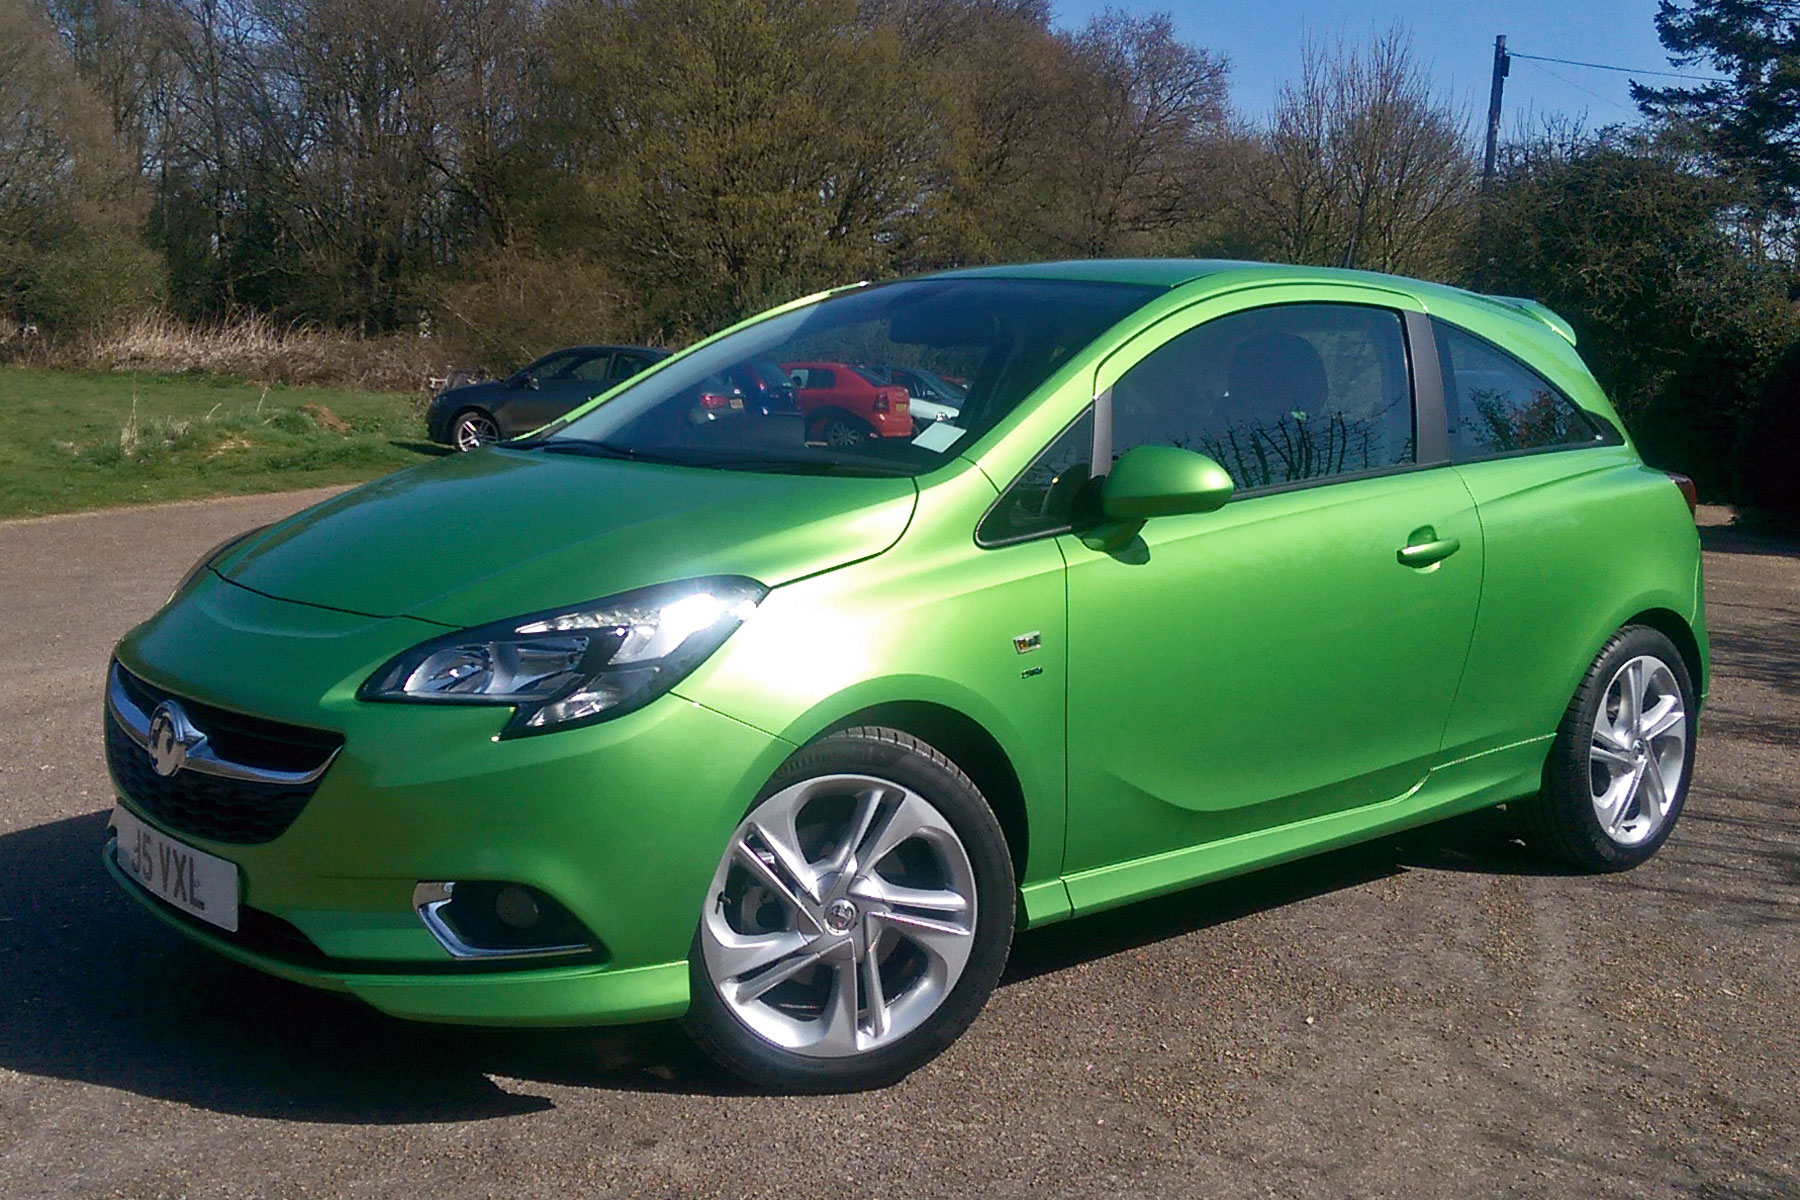 Vauxhall Corsa (2015) long-term review